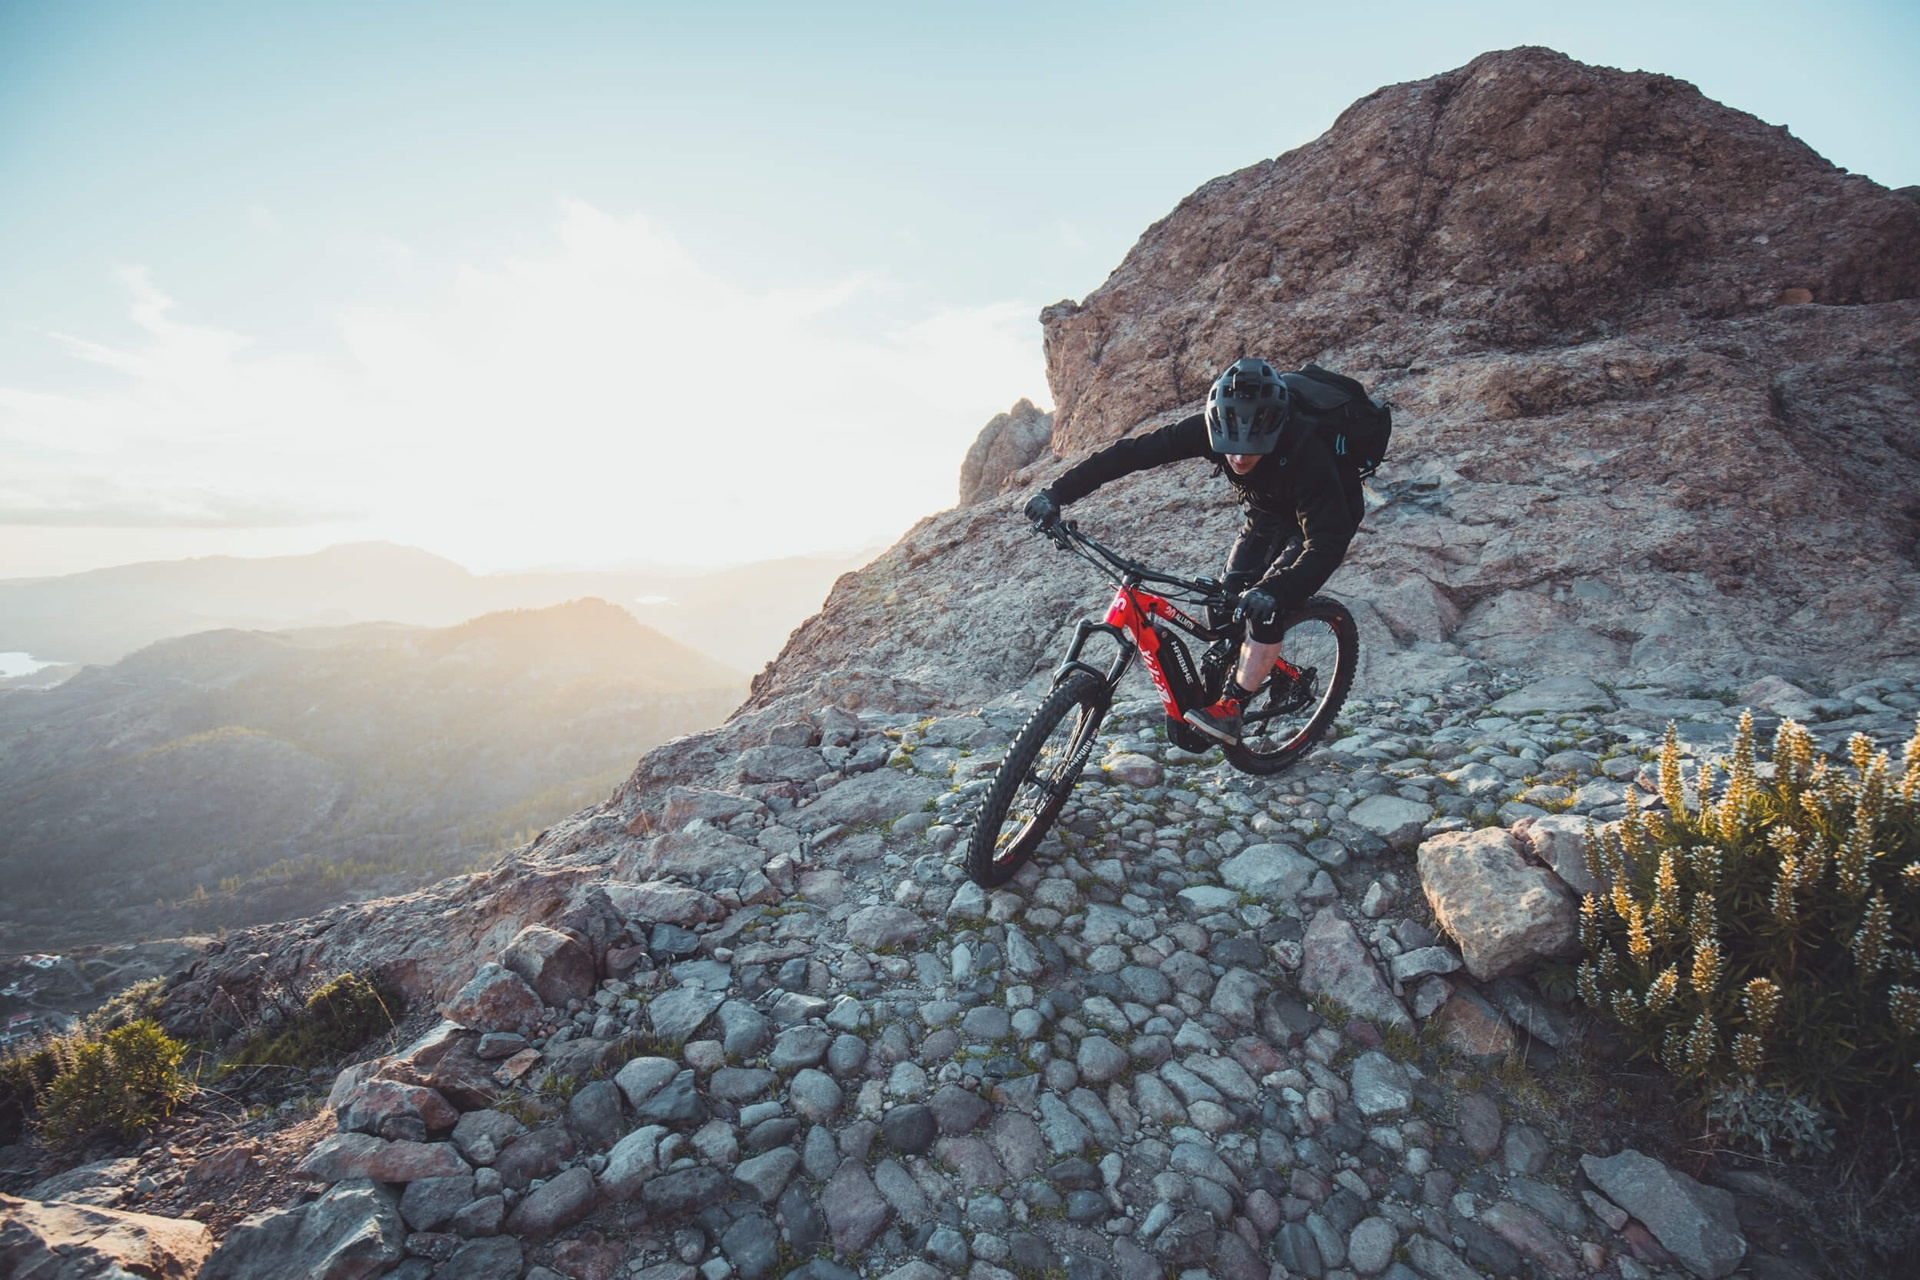 DISCOVER A WORLD FULL OF NEW POSSIBILITIES:  Biking is all about freedom, courage, passion and the joy of discovery. We want to drive people to explore and expand their boundaries, uphill and downhill, by day and night. Regardless of your skill level or r